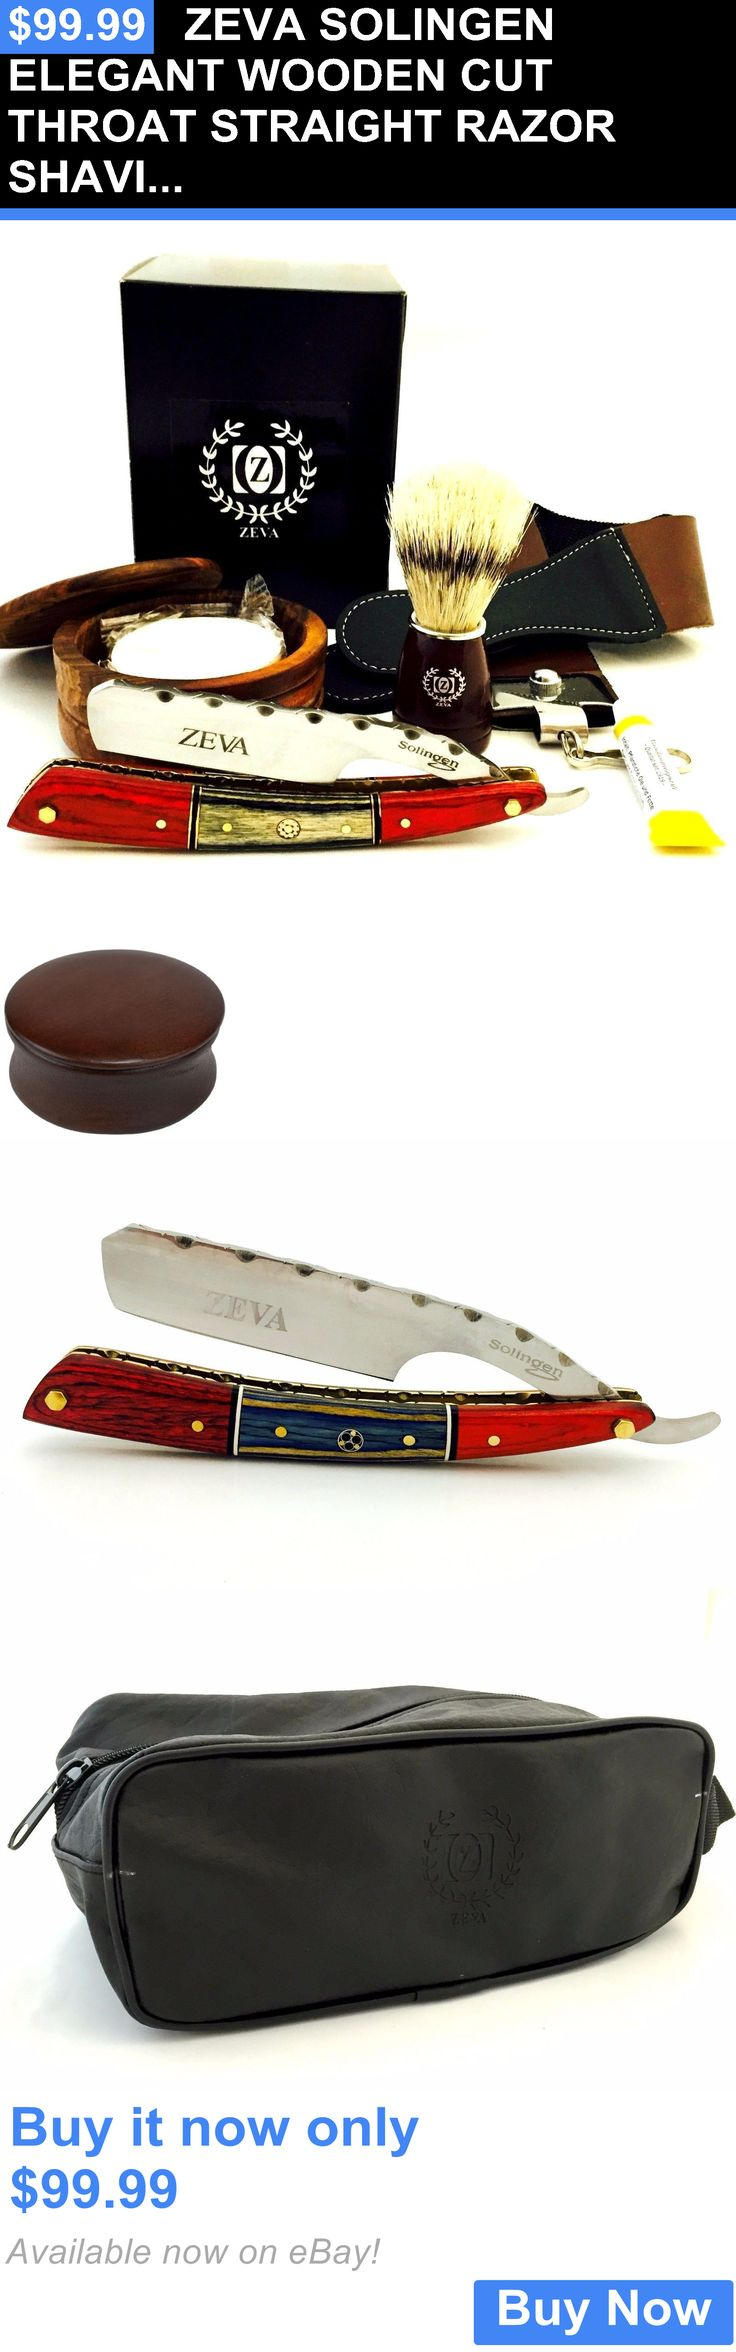 Straight Razors: Zeva Solingen Elegant Wooden Cut Throat Straight Razor Shaving Set, Dovo Paste BUY IT NOW ONLY: $99.99